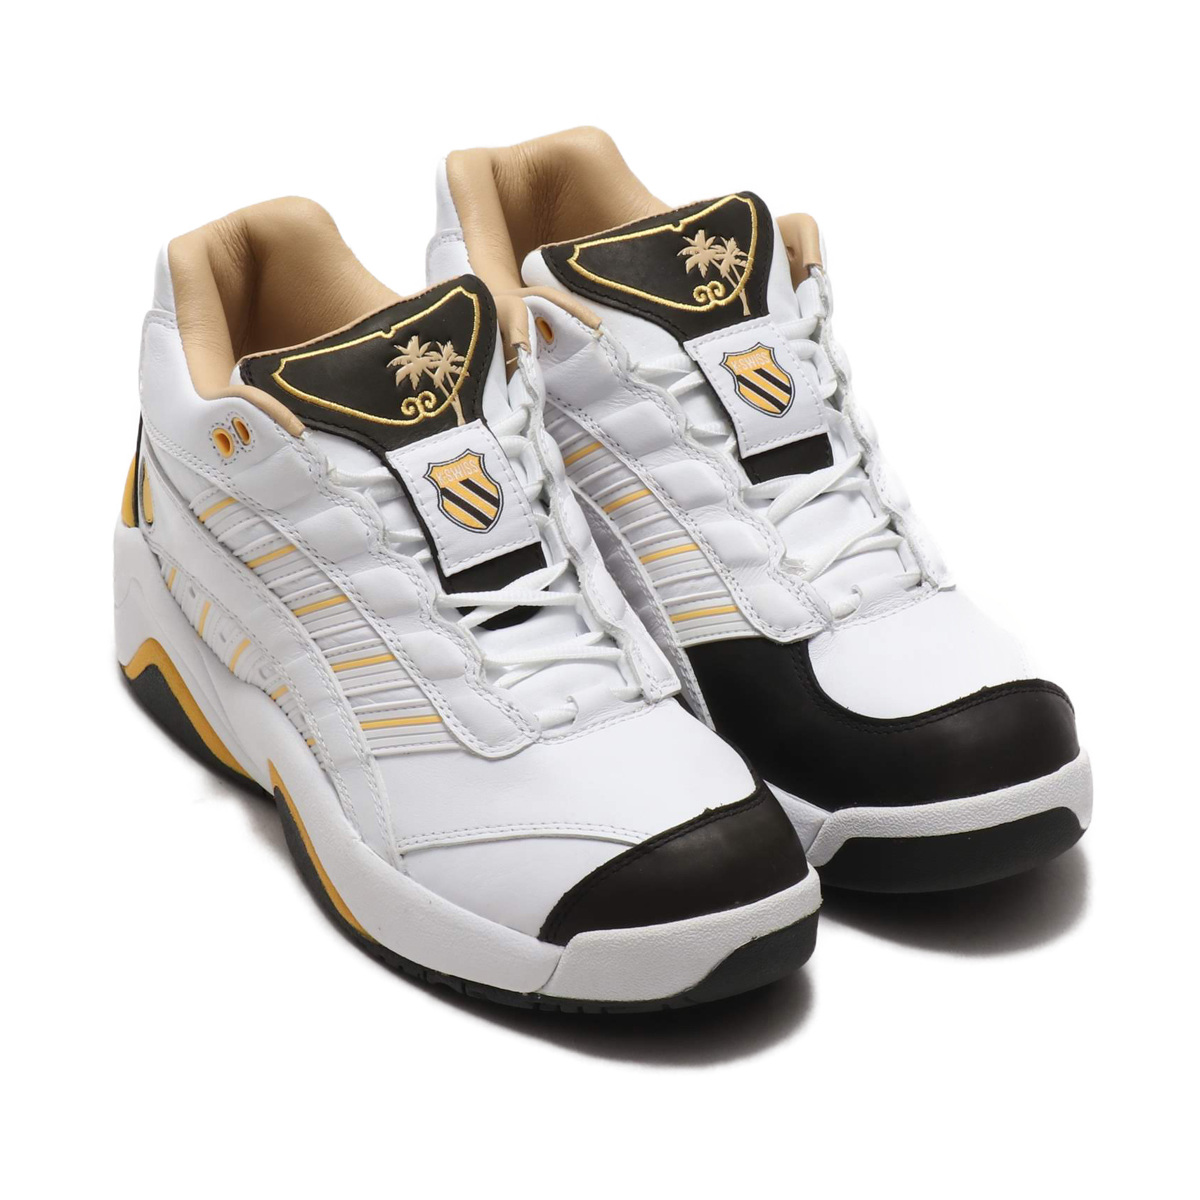 K・SWISS SI-DEFIER LUX (ケースイス SI-ディファイアーLUX)WHITE/BLACK/INK【メンズ レディース スニーカー】19SS-I